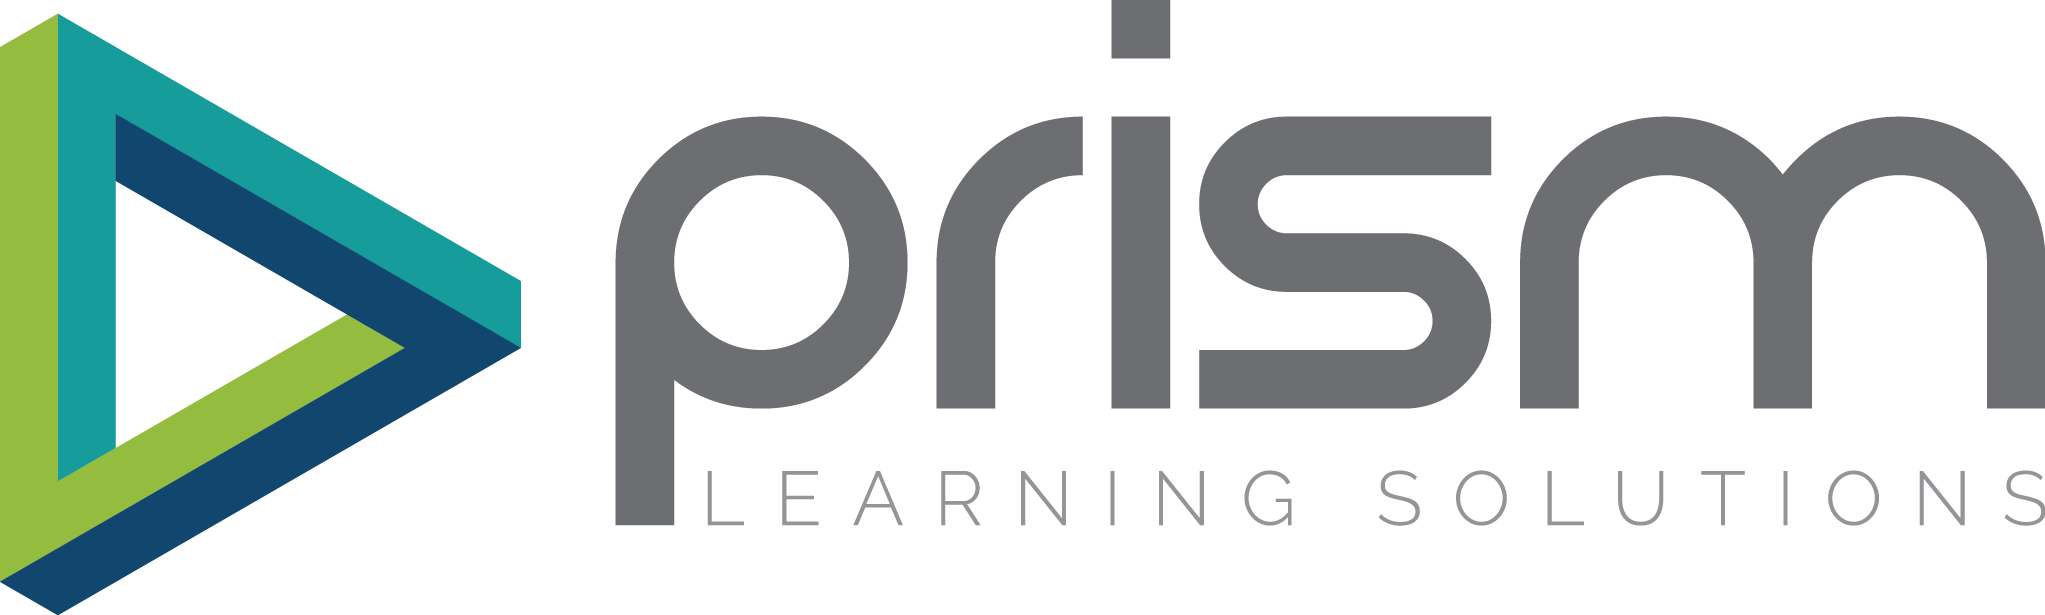 Prism Learning Solutions